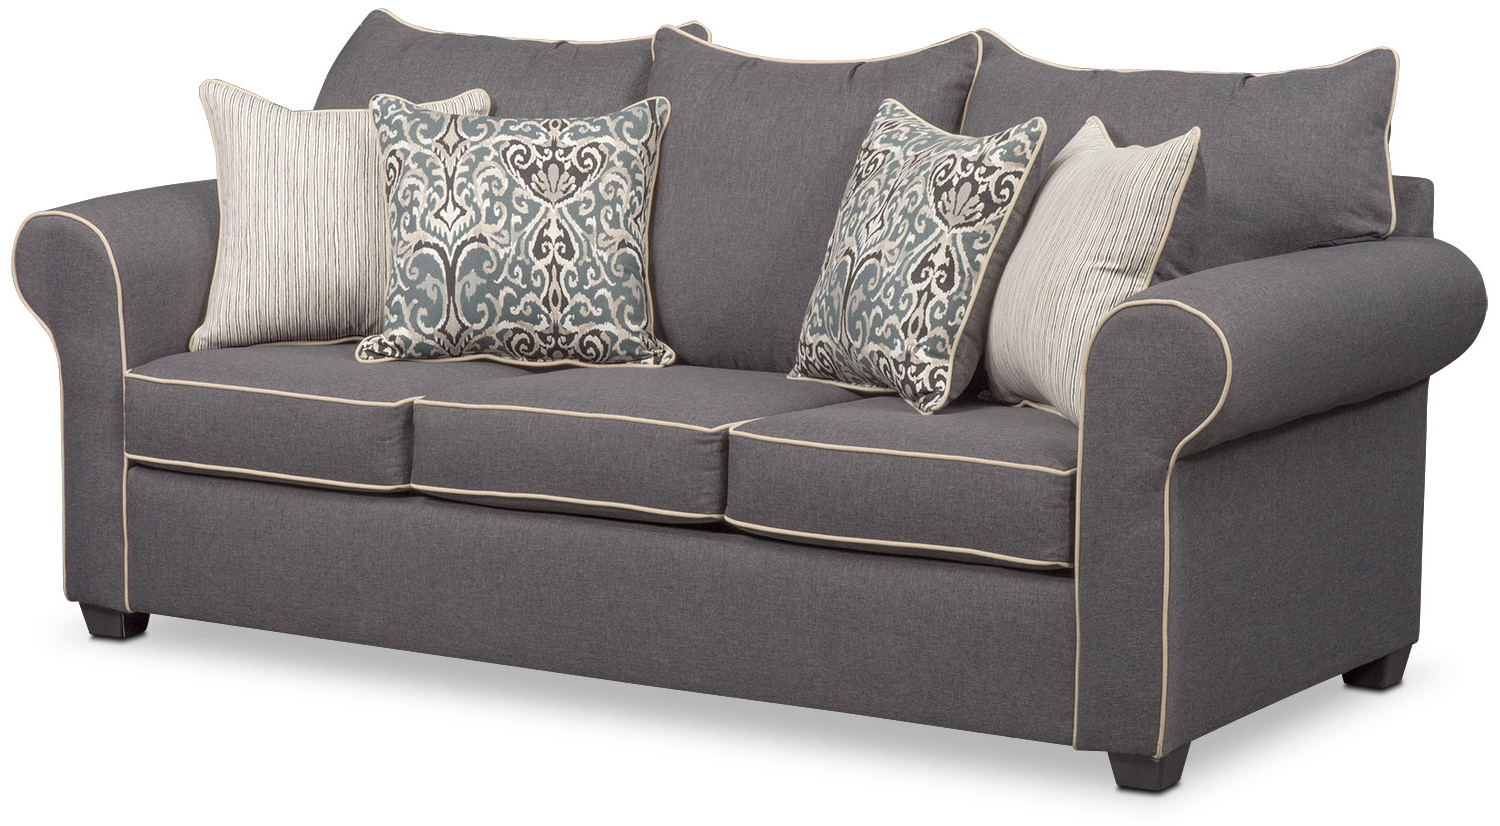 Fashionable Carla Queen Innerspring Sleeper Sofa, Loveseat, And Chair Set For Sofa Loveseat And Chairs (View 4 of 20)